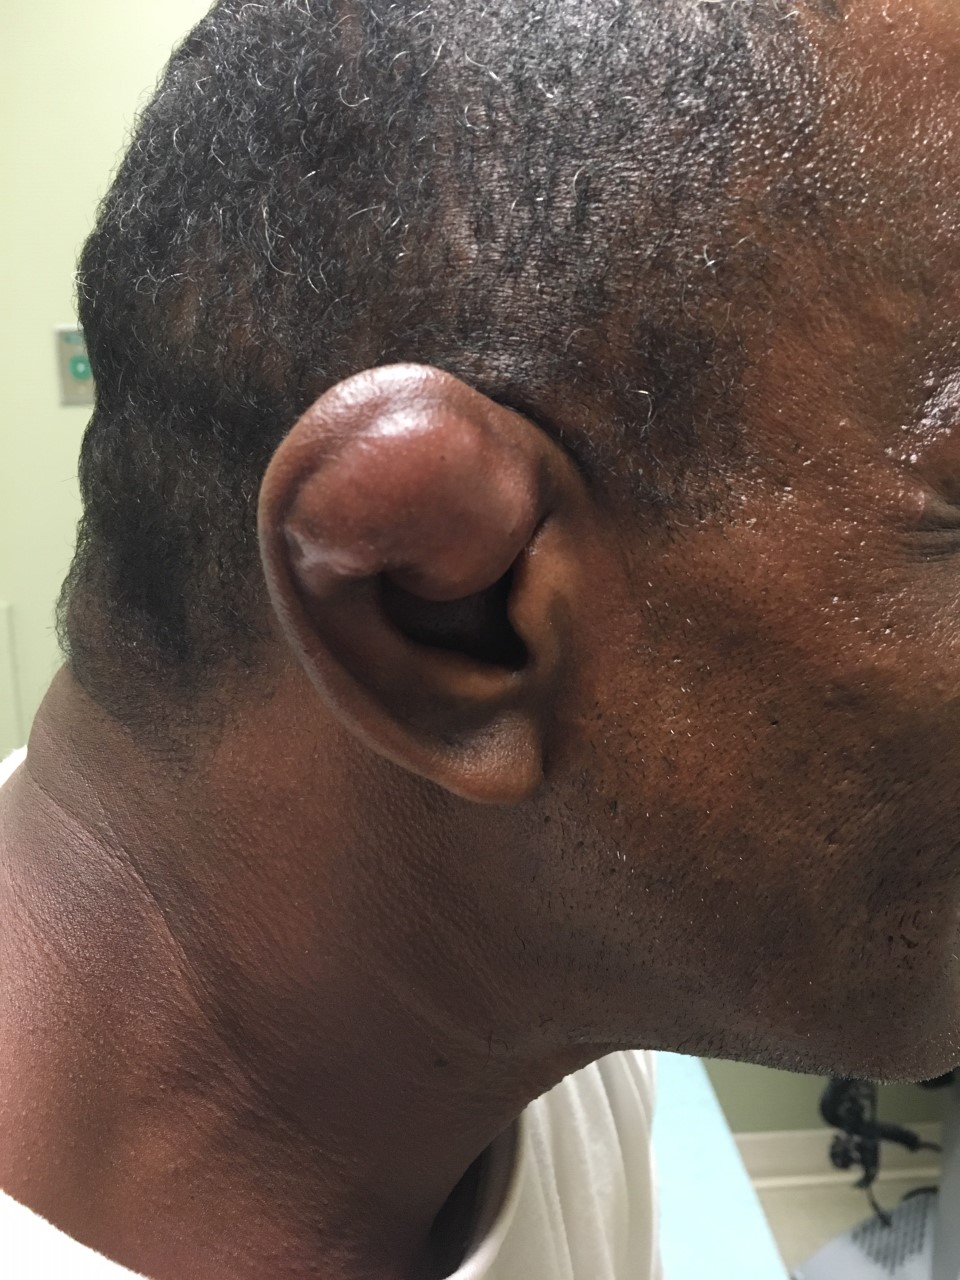 Cauliflower ear - severe